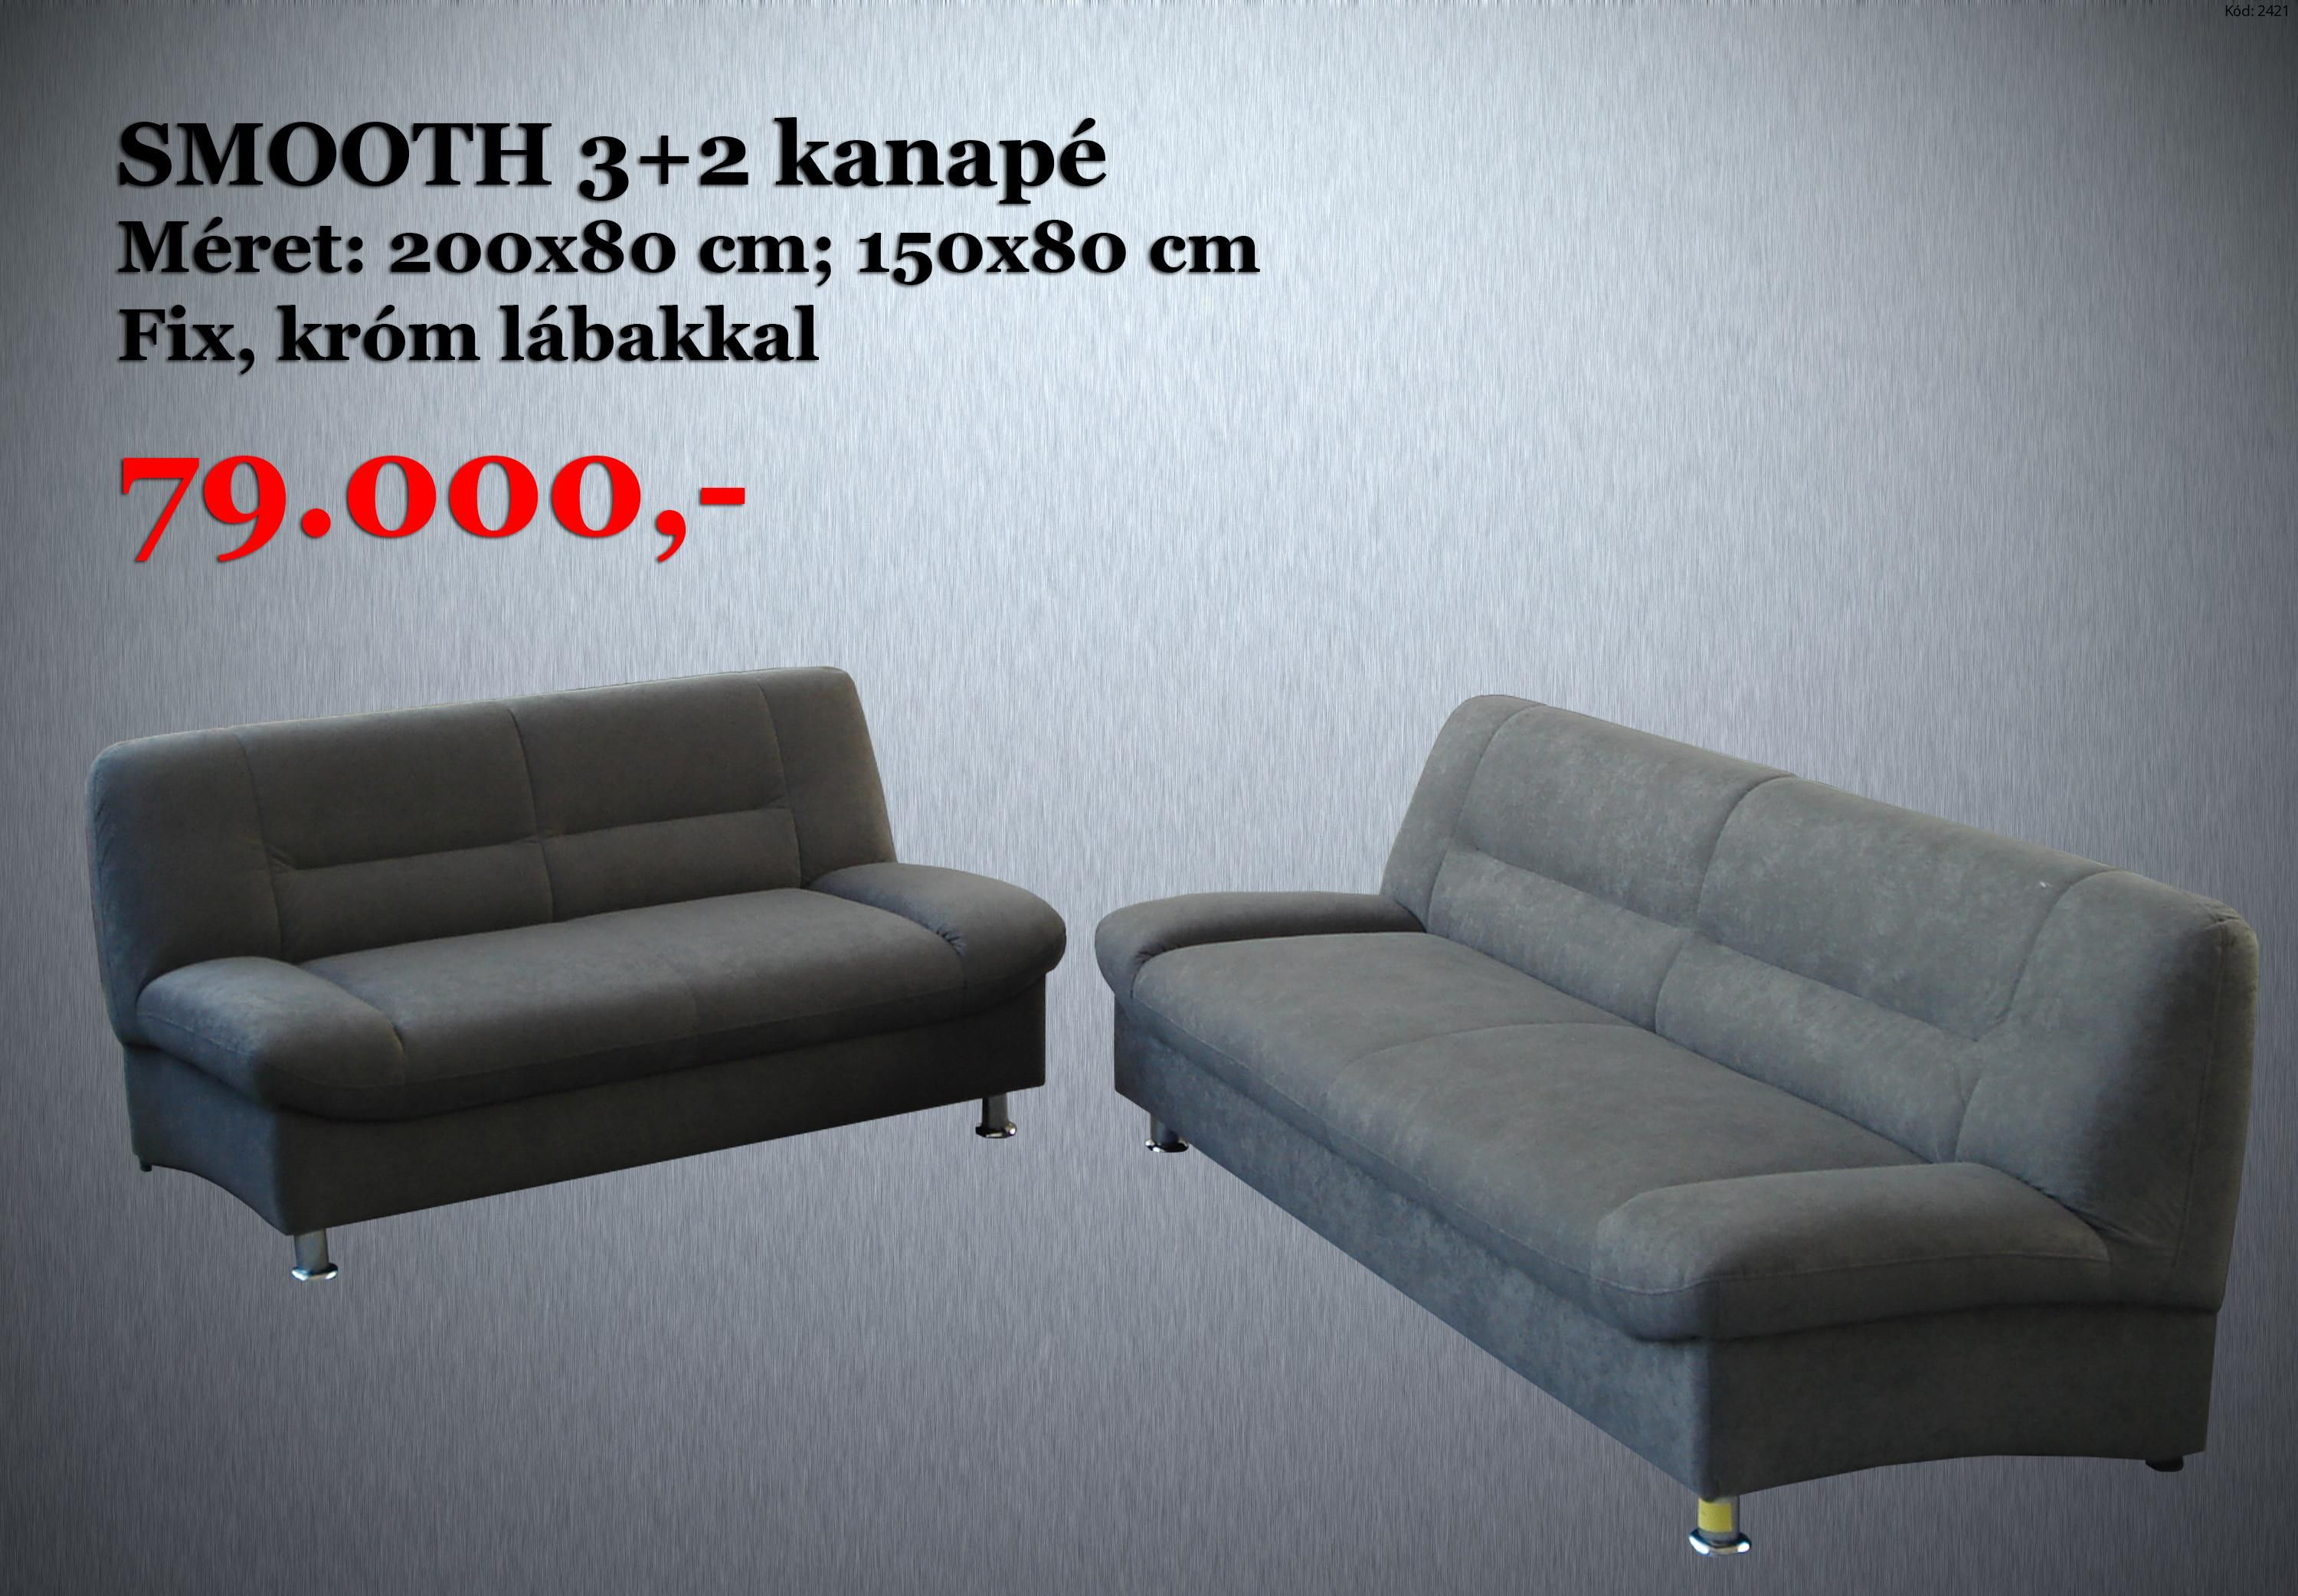 Kanapee Sofa Couch Kanapee Sofa Couch Finest Wright Olasz Szvetes Kanap With